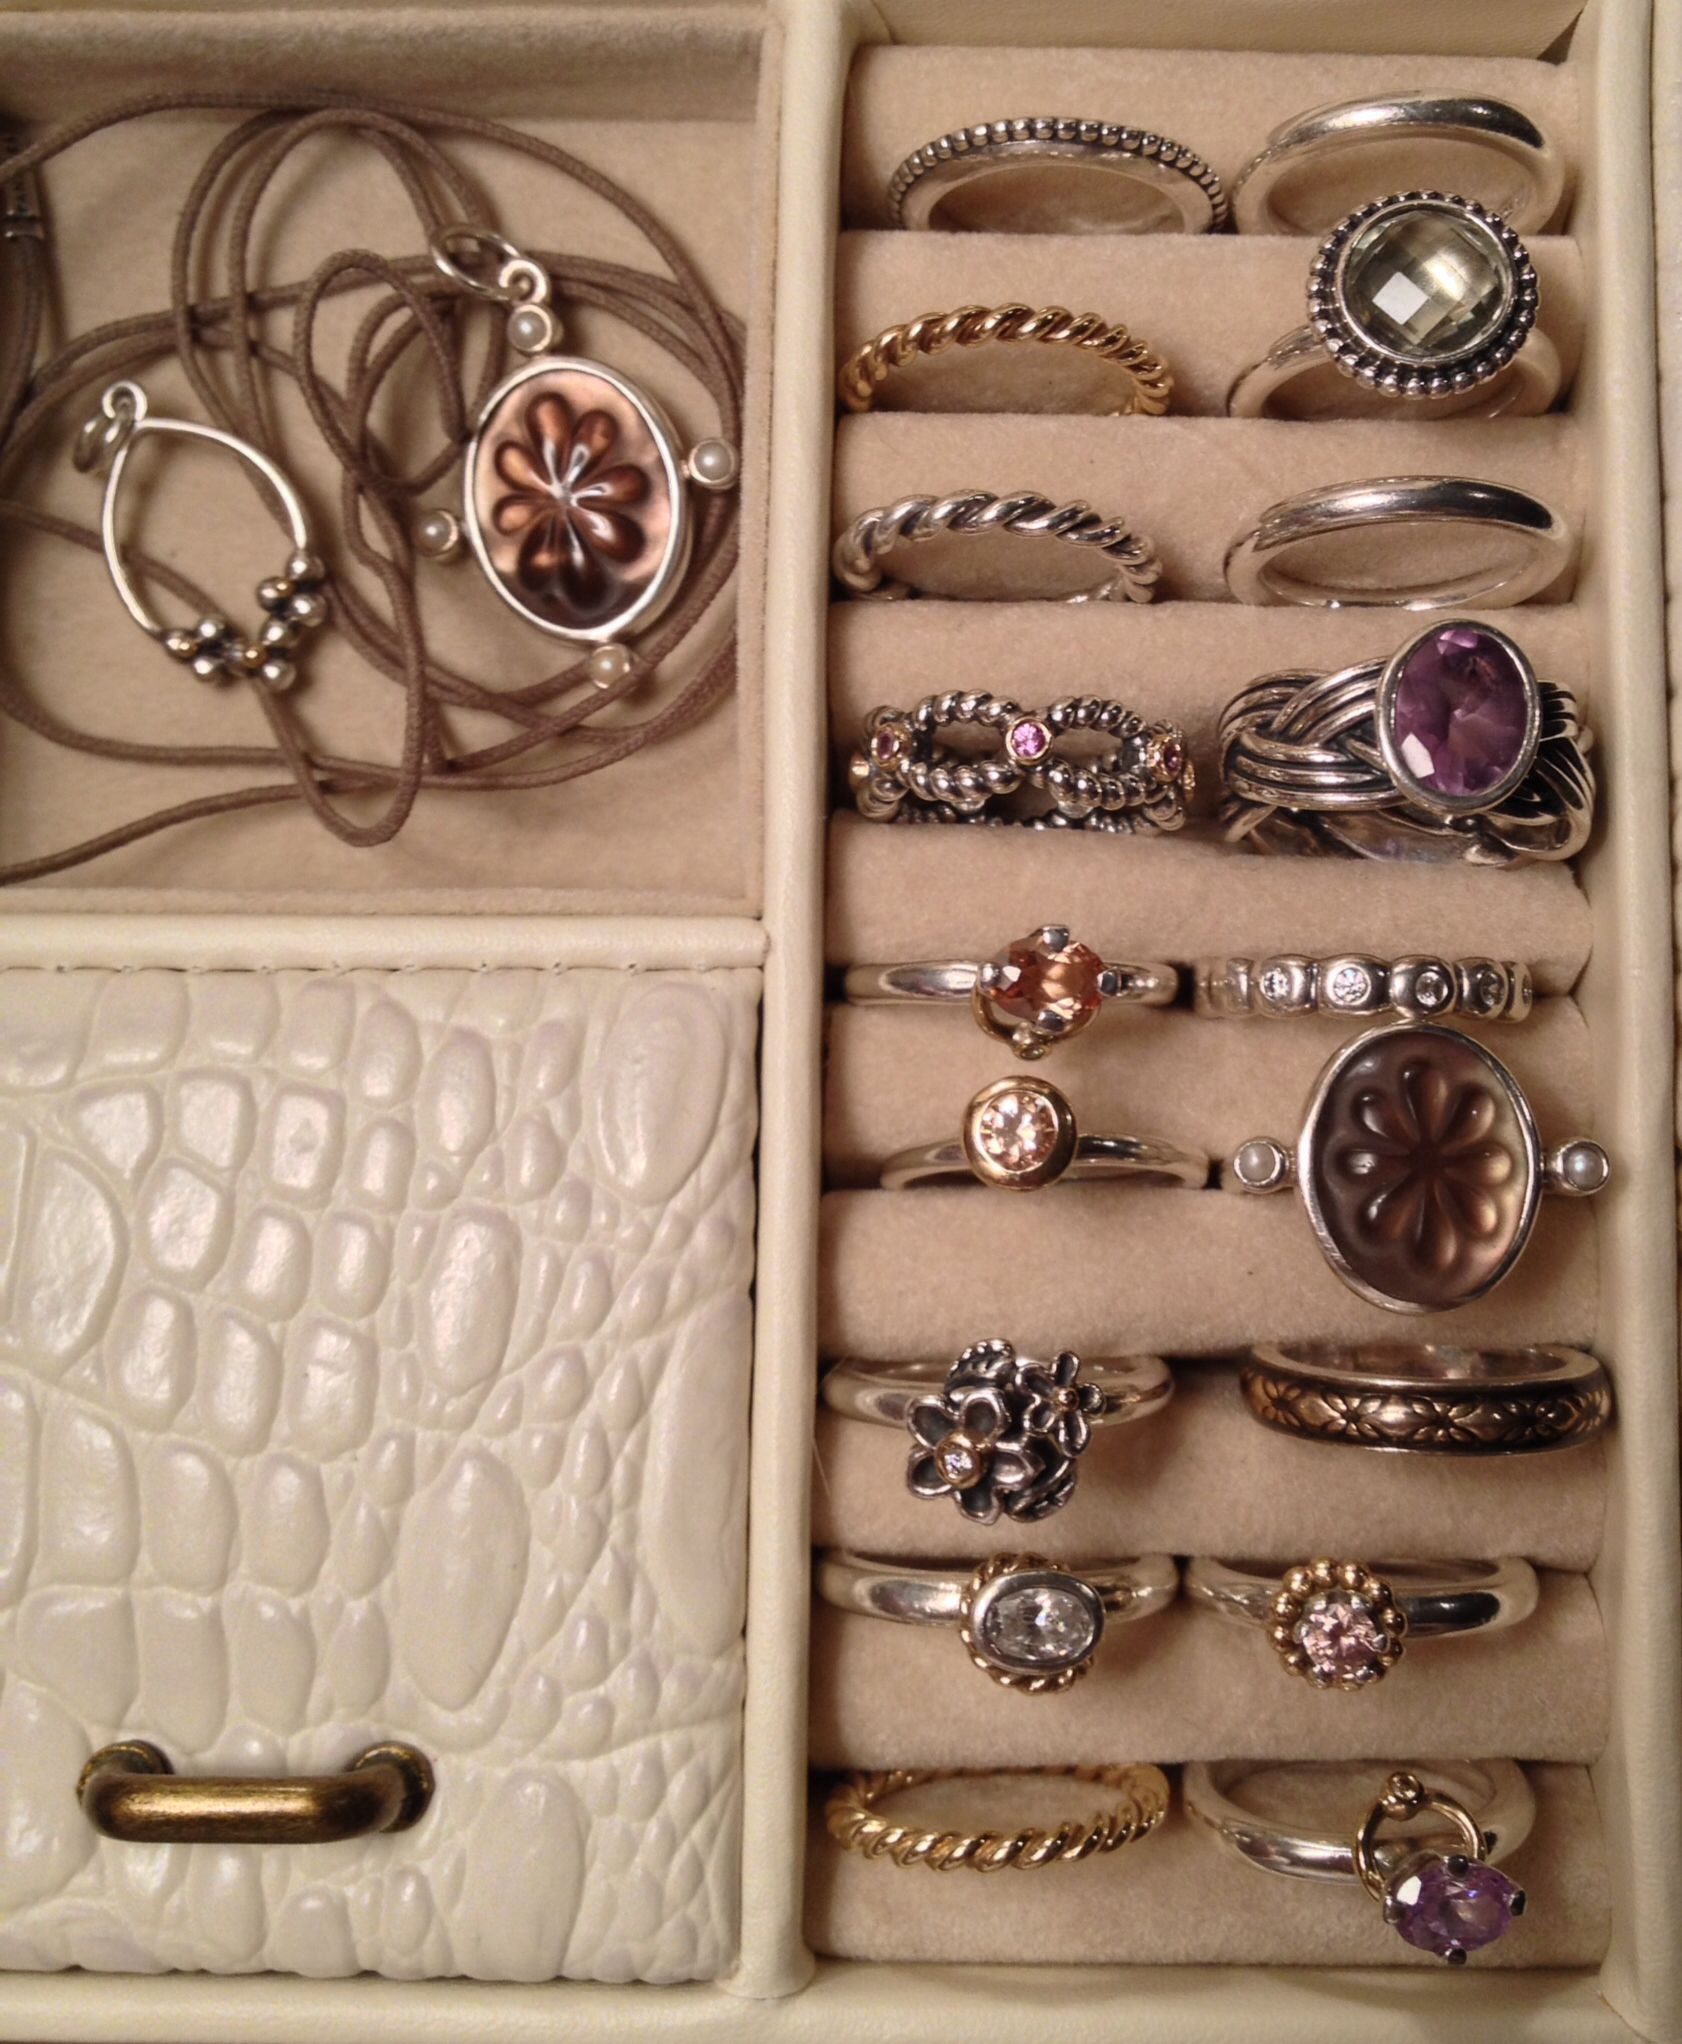 Pandora Earrings Jewelry: PANDORA Rings And Things. ... Beautiful Retired Pieces